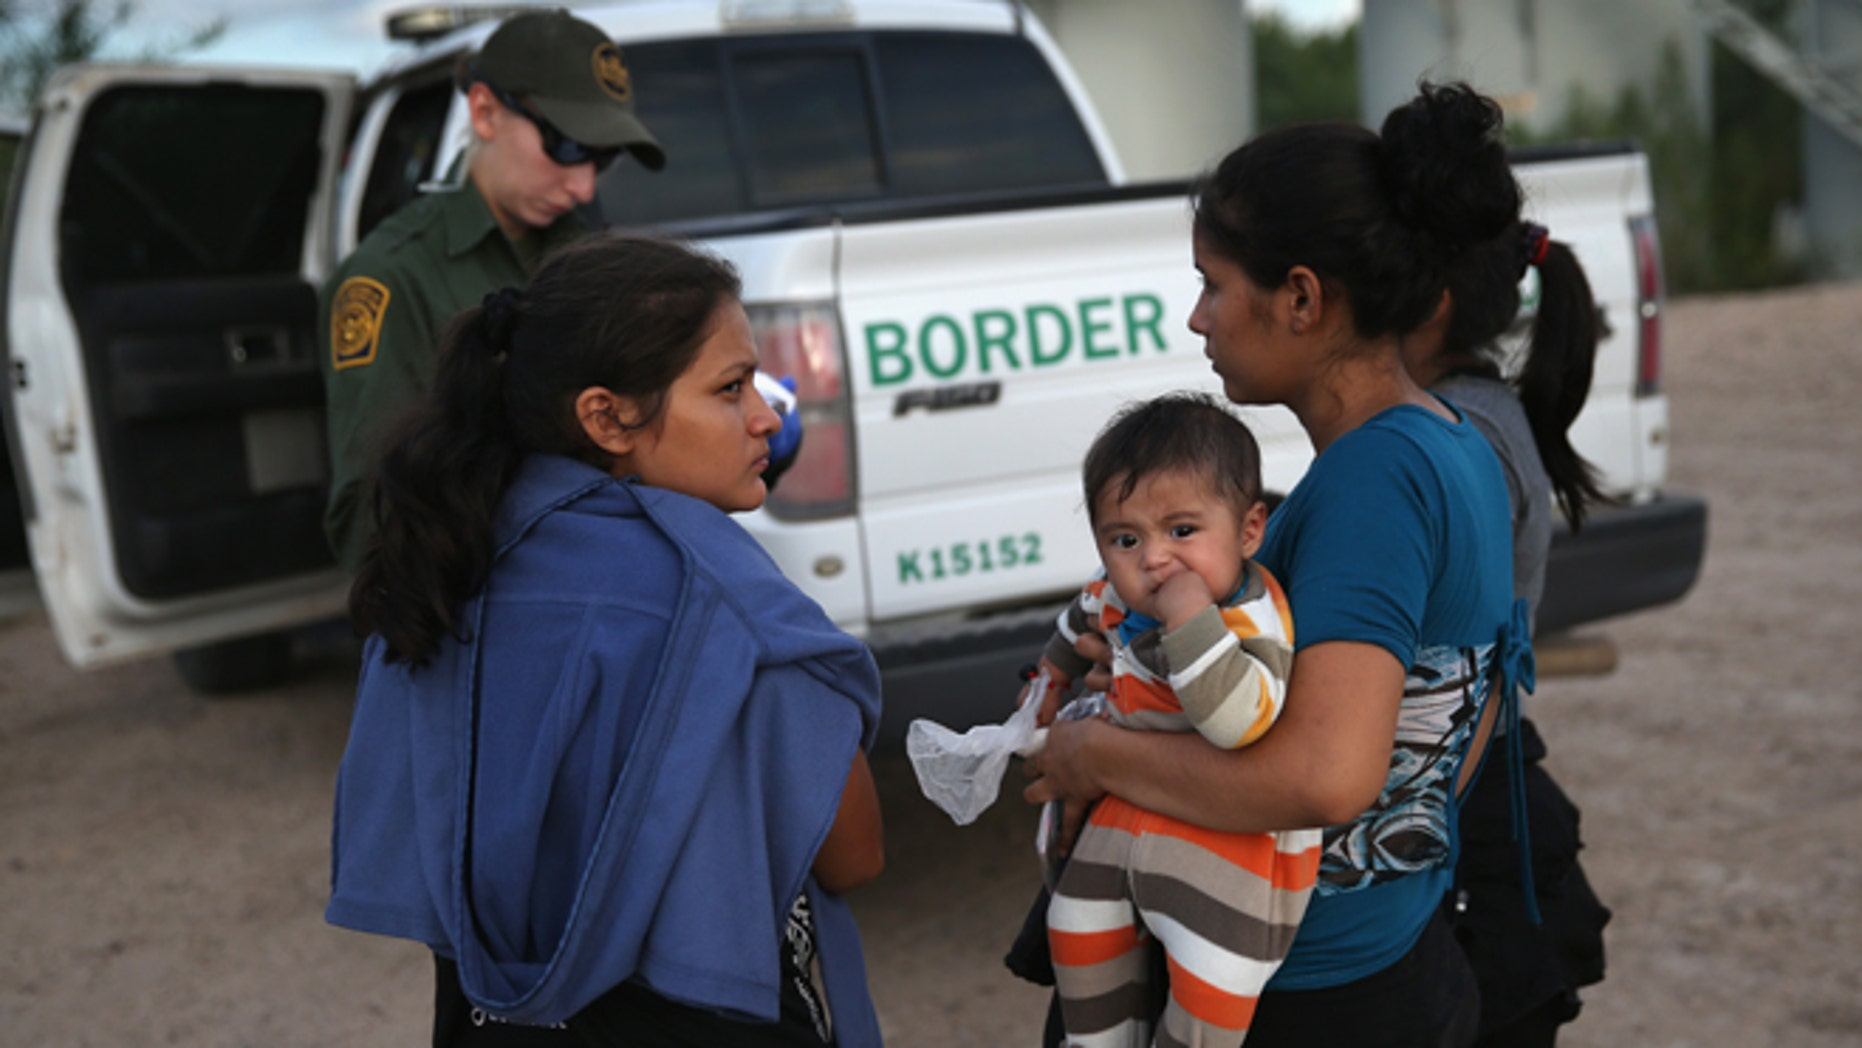 MCALLEN, TX - SEPTEMBER 08:  Families of Central American immigrants turn themselves in to U.S. Border Patrol agents after crossing the Rio Grande River from Mexico on September 8, 2014 to McAllen, Texas. Although the numbers of such immigrant families and unaccompanied minors have decreased from a springtime high, thousands continue to cross in the border illegally into the United States. The Rio Grande Valley sector is the busiest area for illegal border crossings, especially for Central Americans, into the U.S.  (Photo by John Moore/Getty Images)